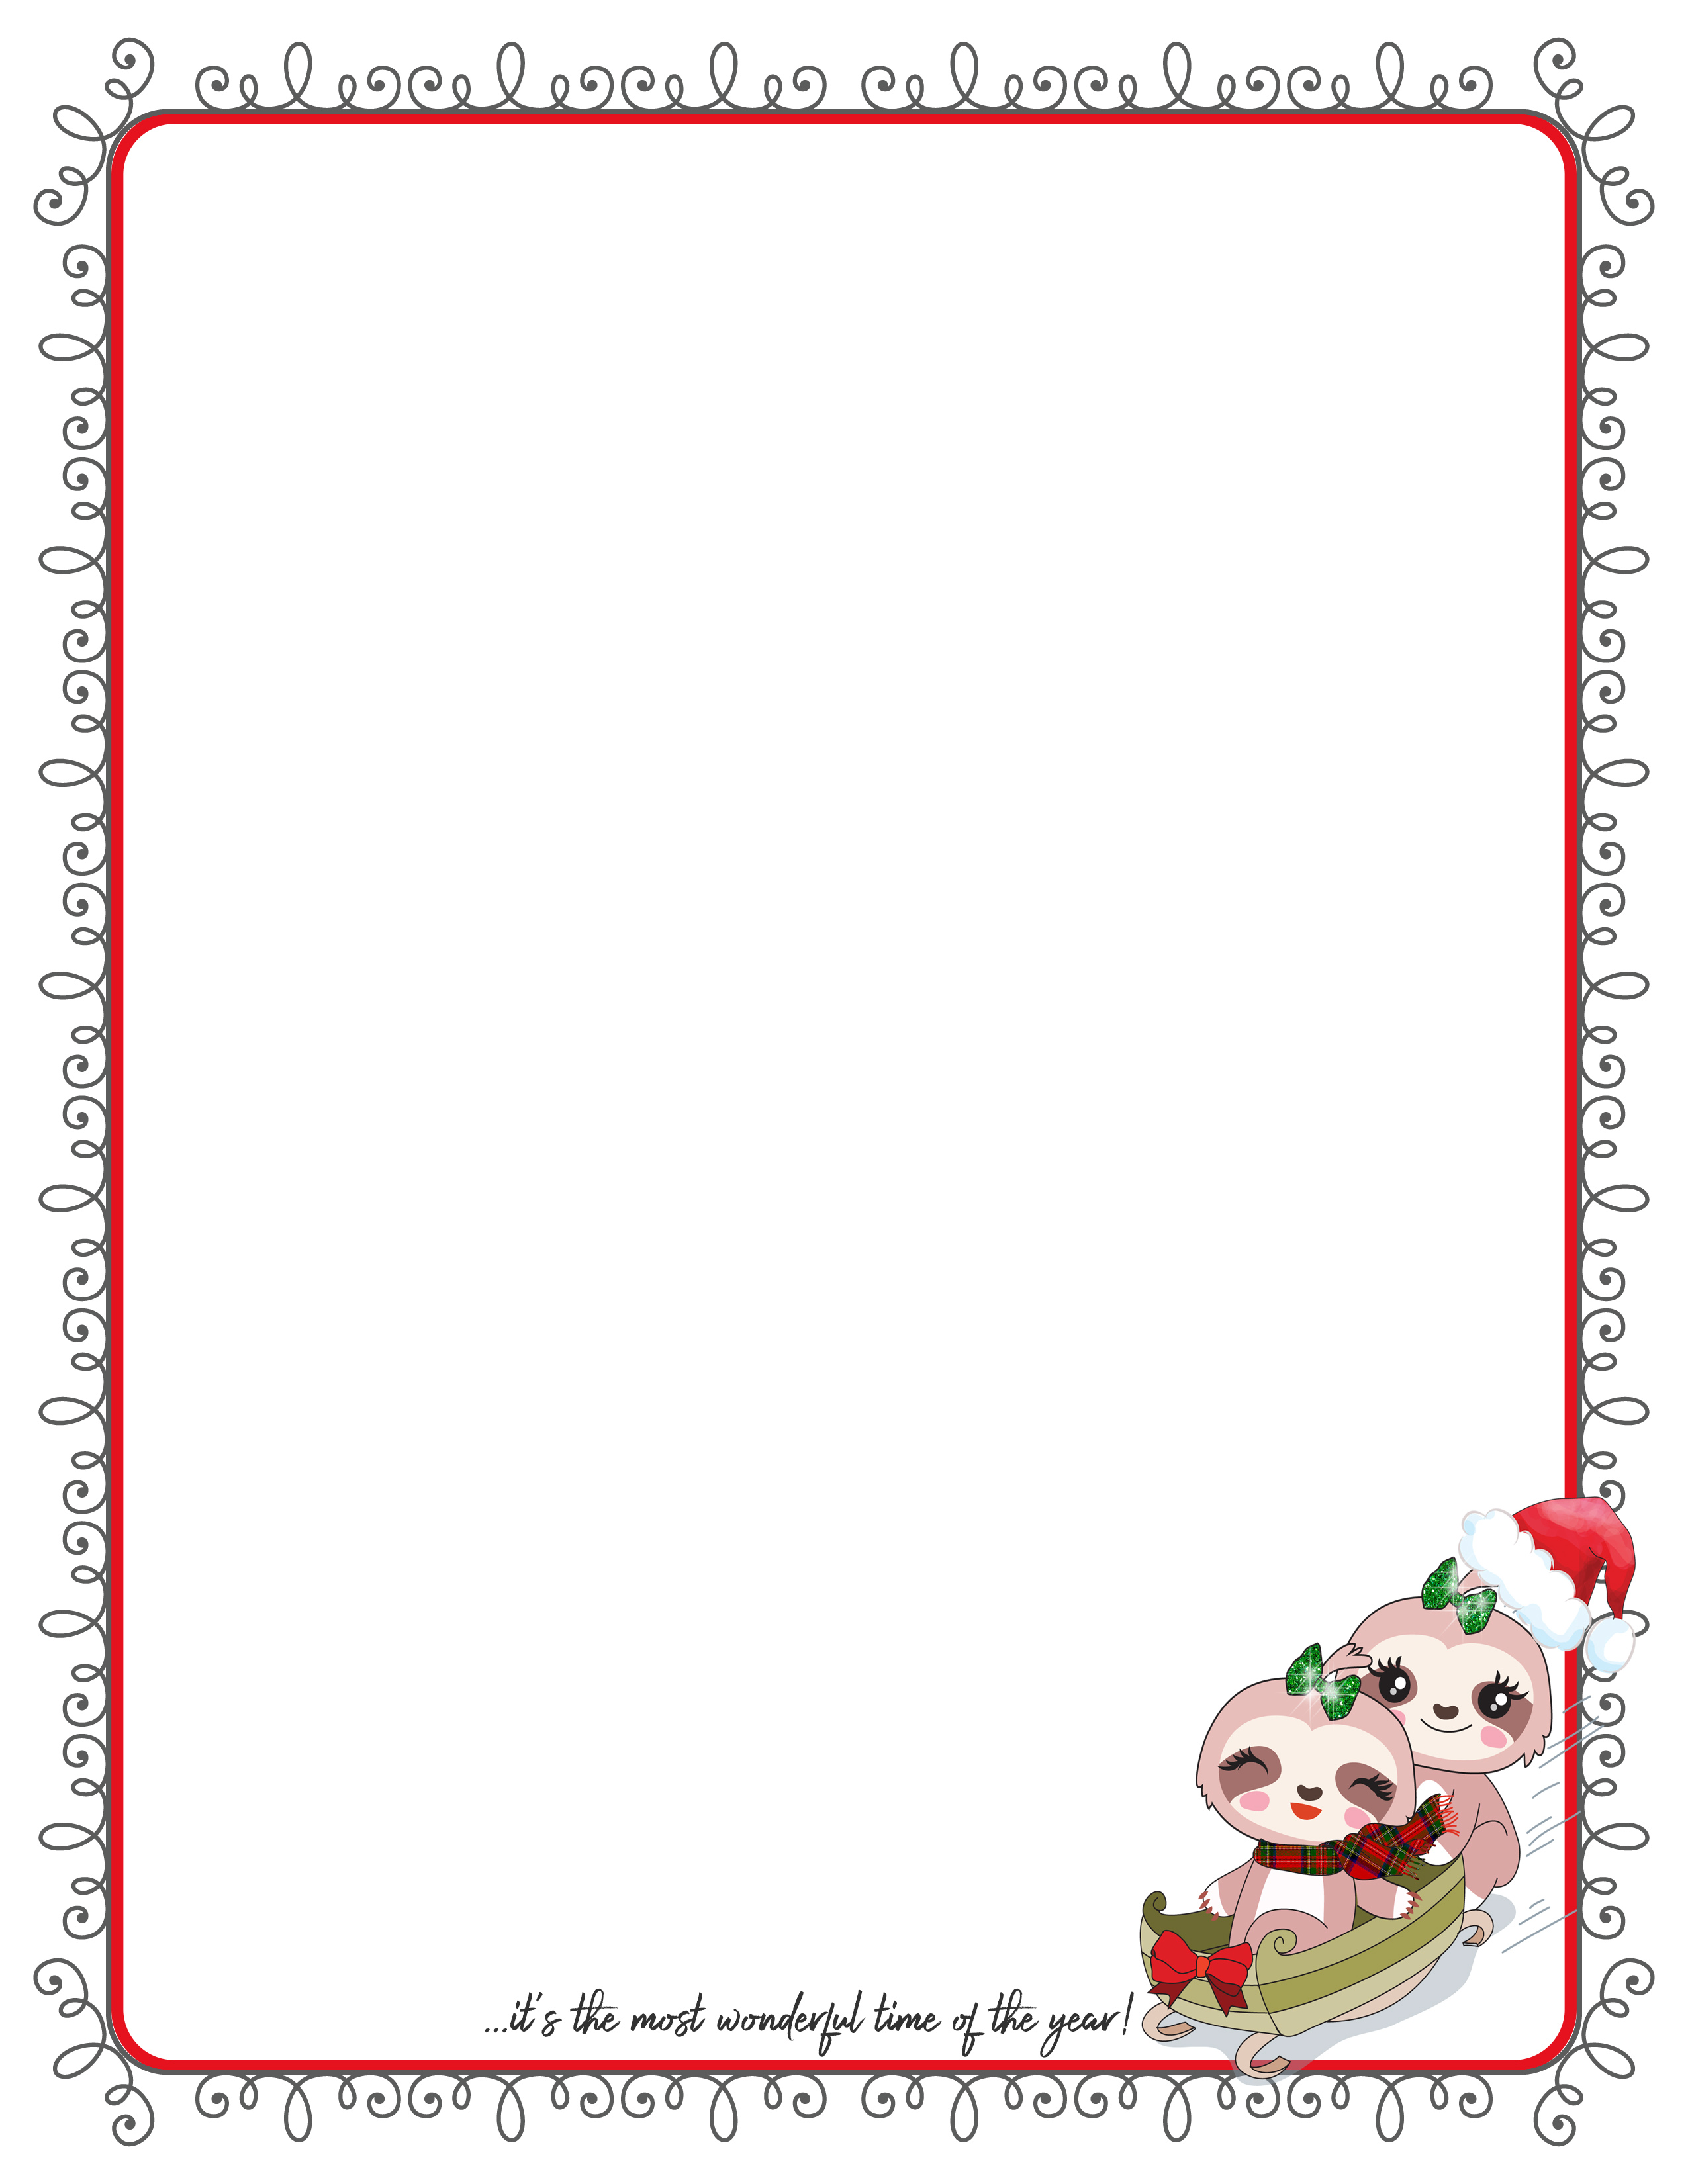 graphic about Printable Lined Paper With Border Pdf named Printable Extremely Stationery For Letter Crafting Having Reduced Ink